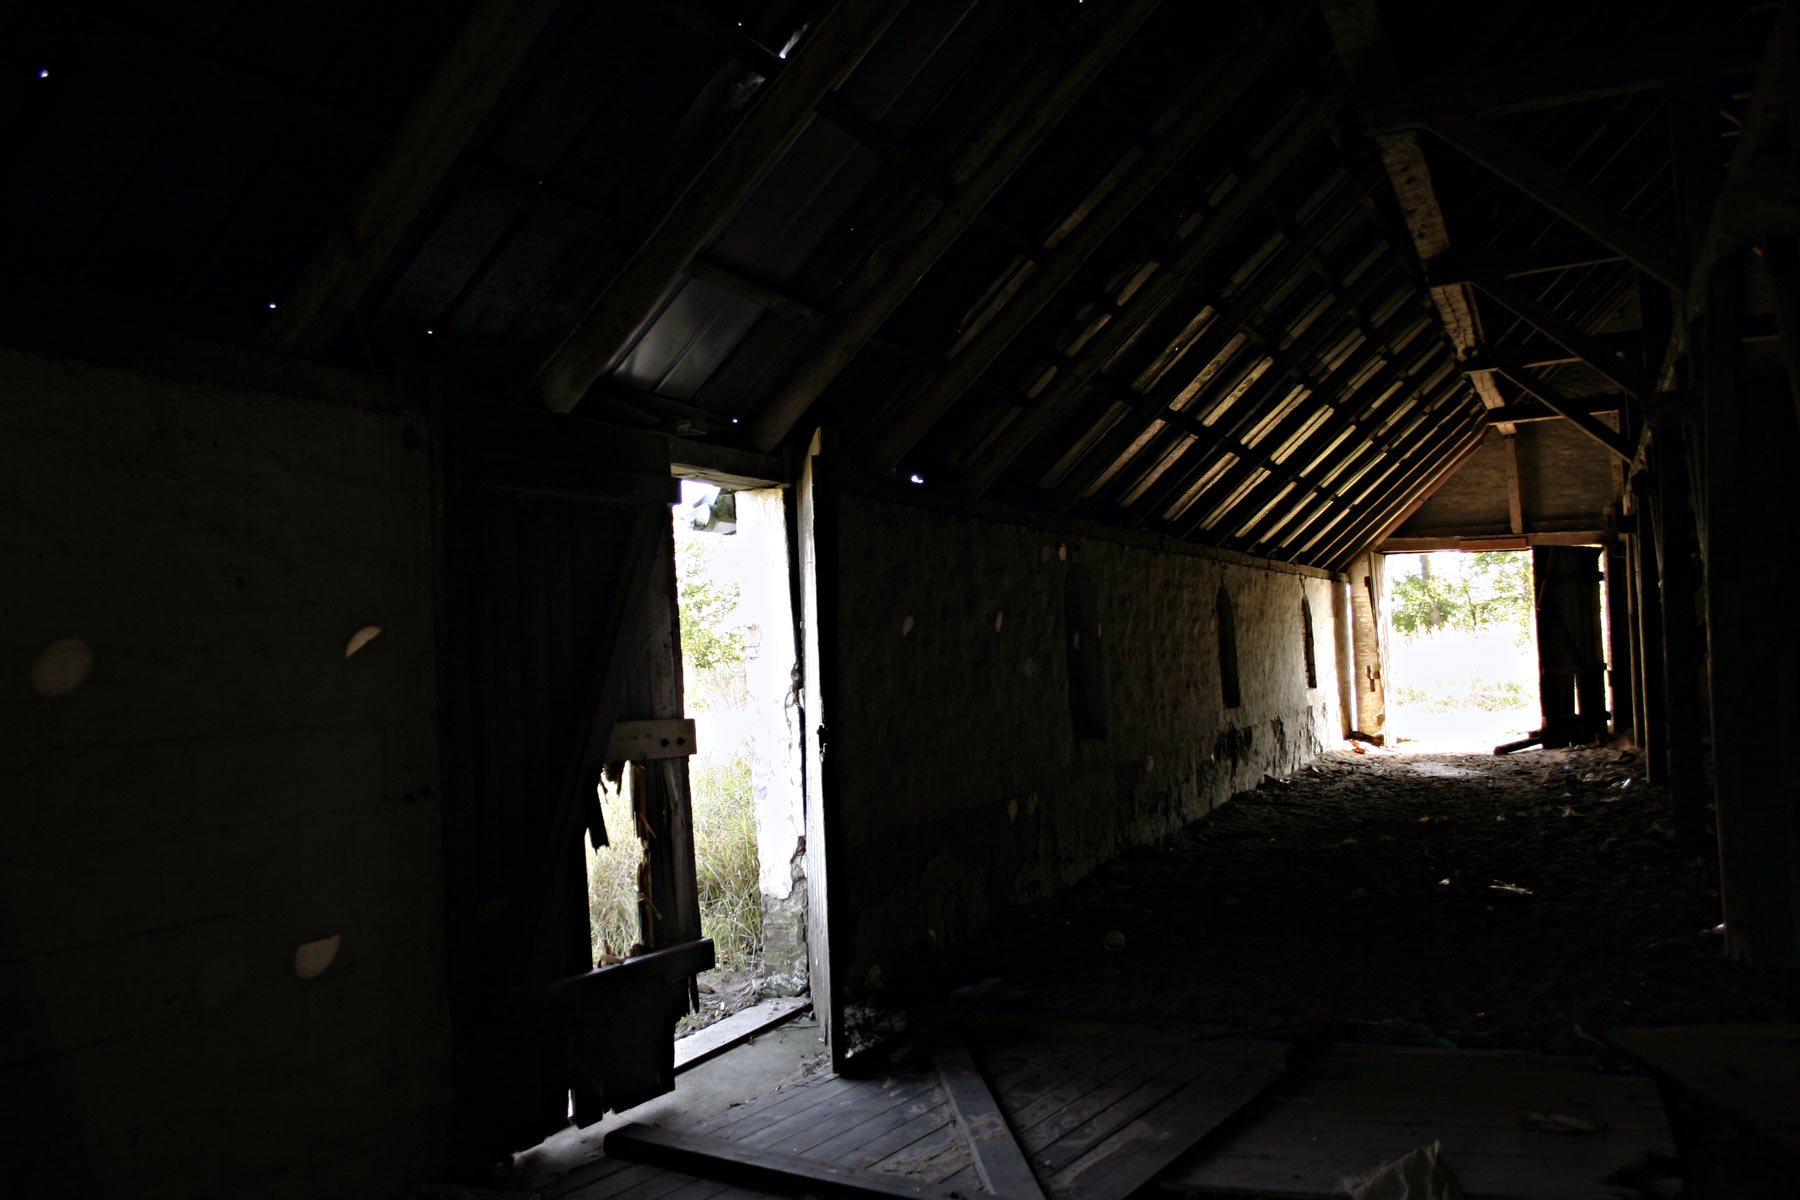 Abandoned house, House, Inside, Light, Scary, HQ Photo